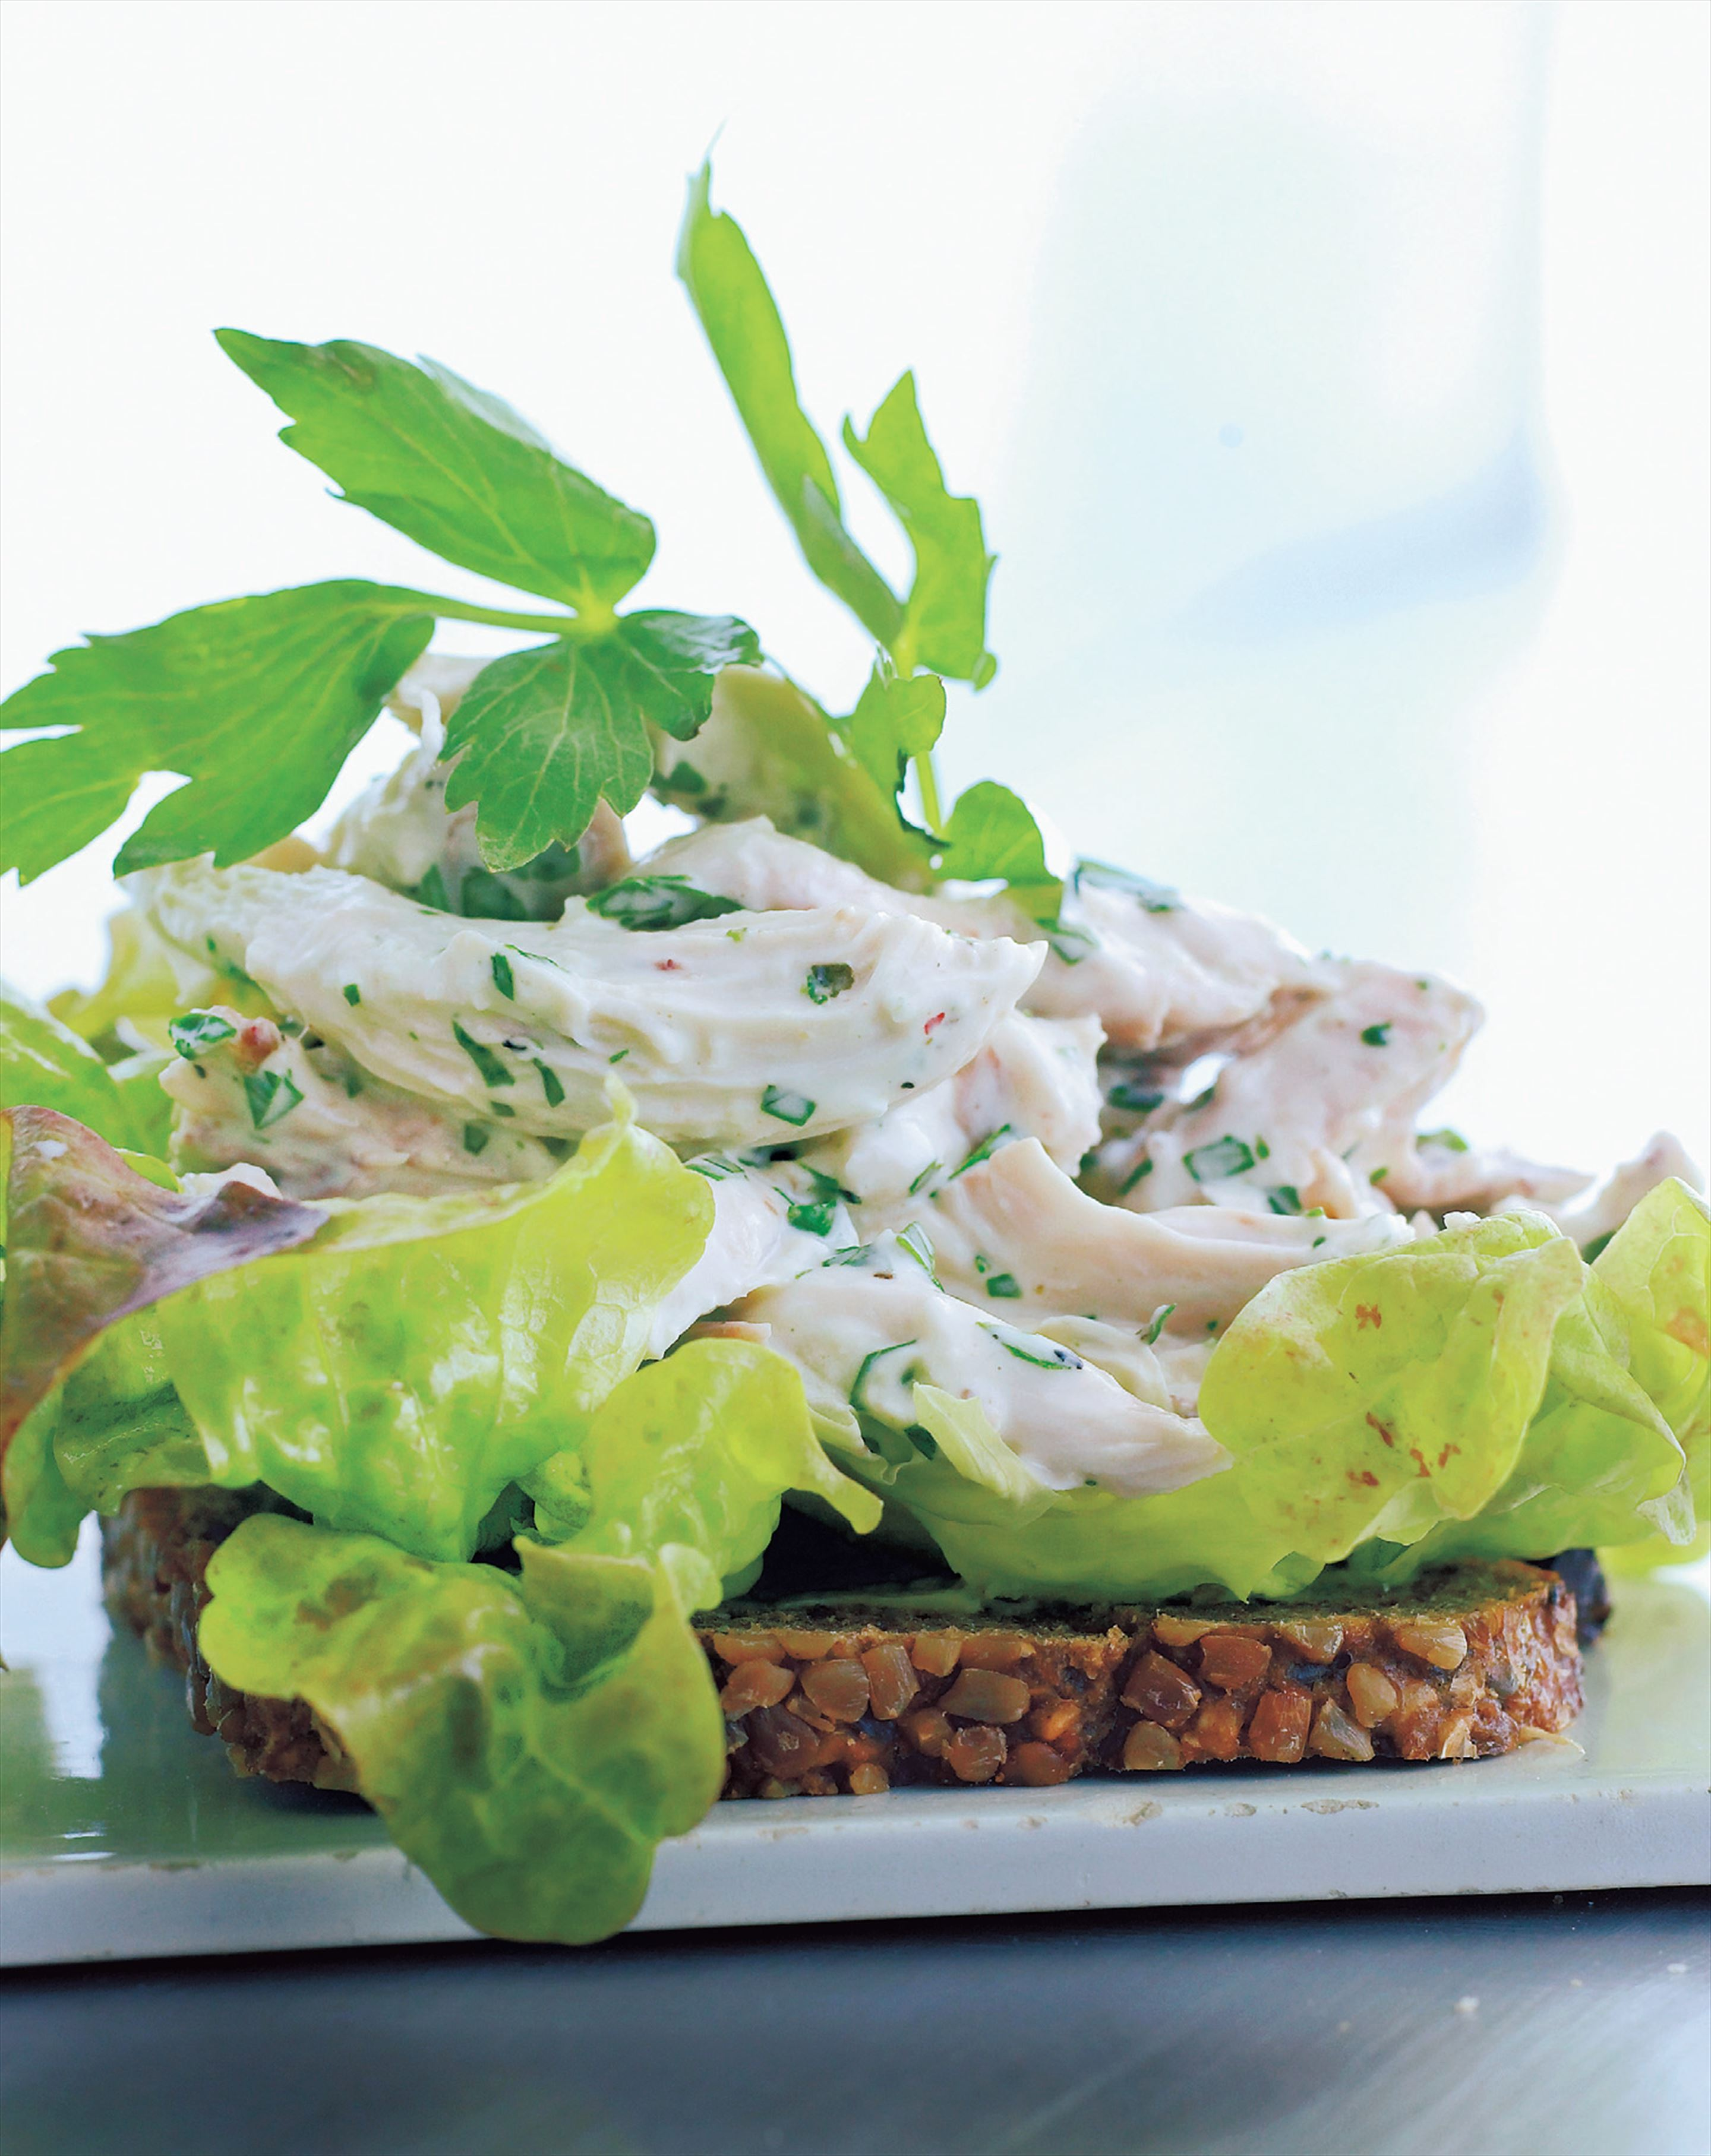 Smørrebrød: chicken and lovage salad on rye bread